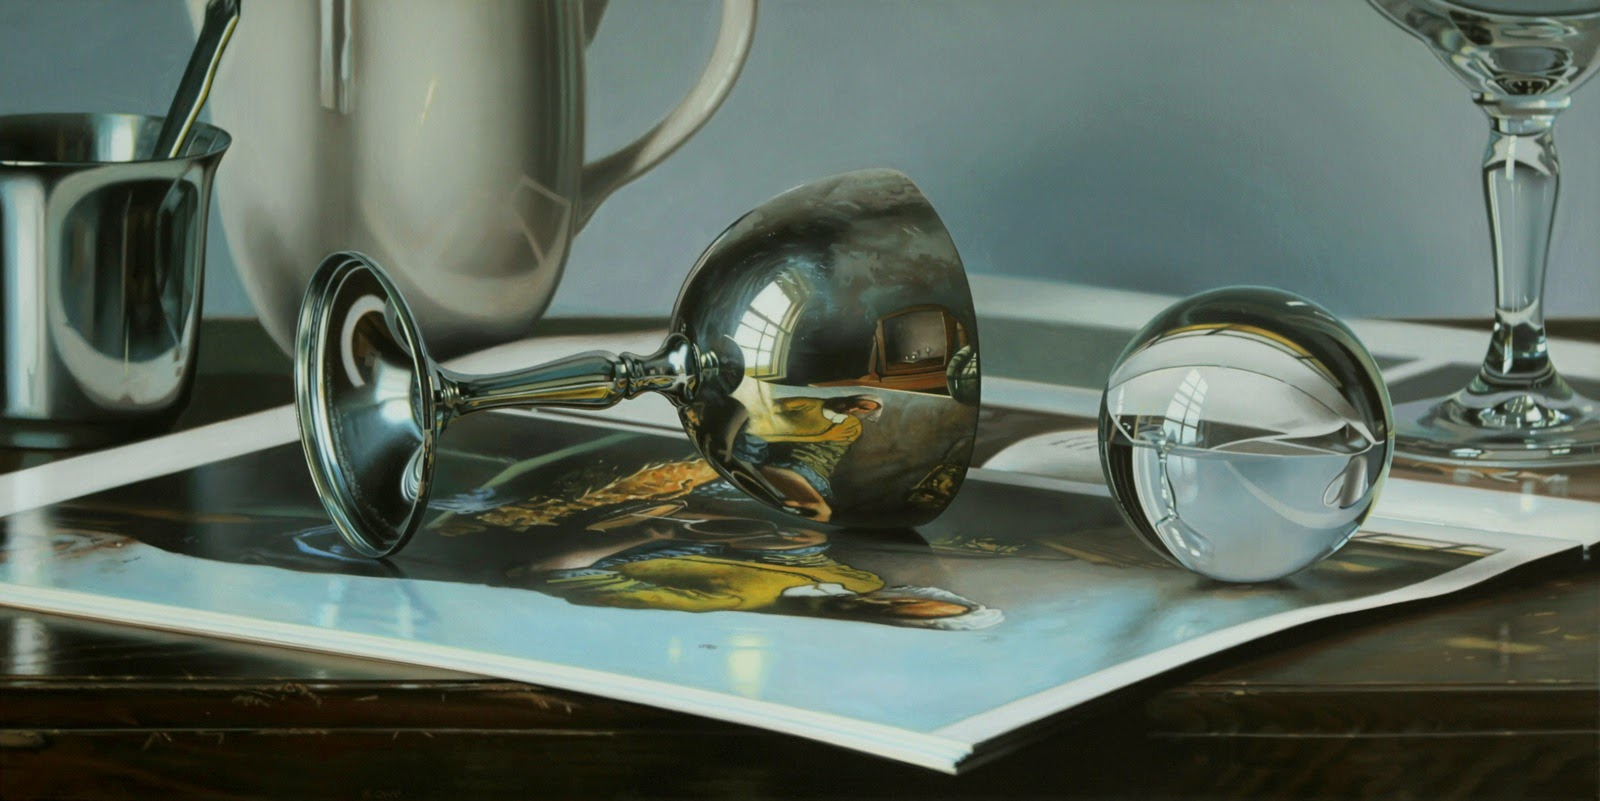 11-The-Sphinx-of-Delft-Photo-Realistic-Reflection-Paintings-www-designstack-co